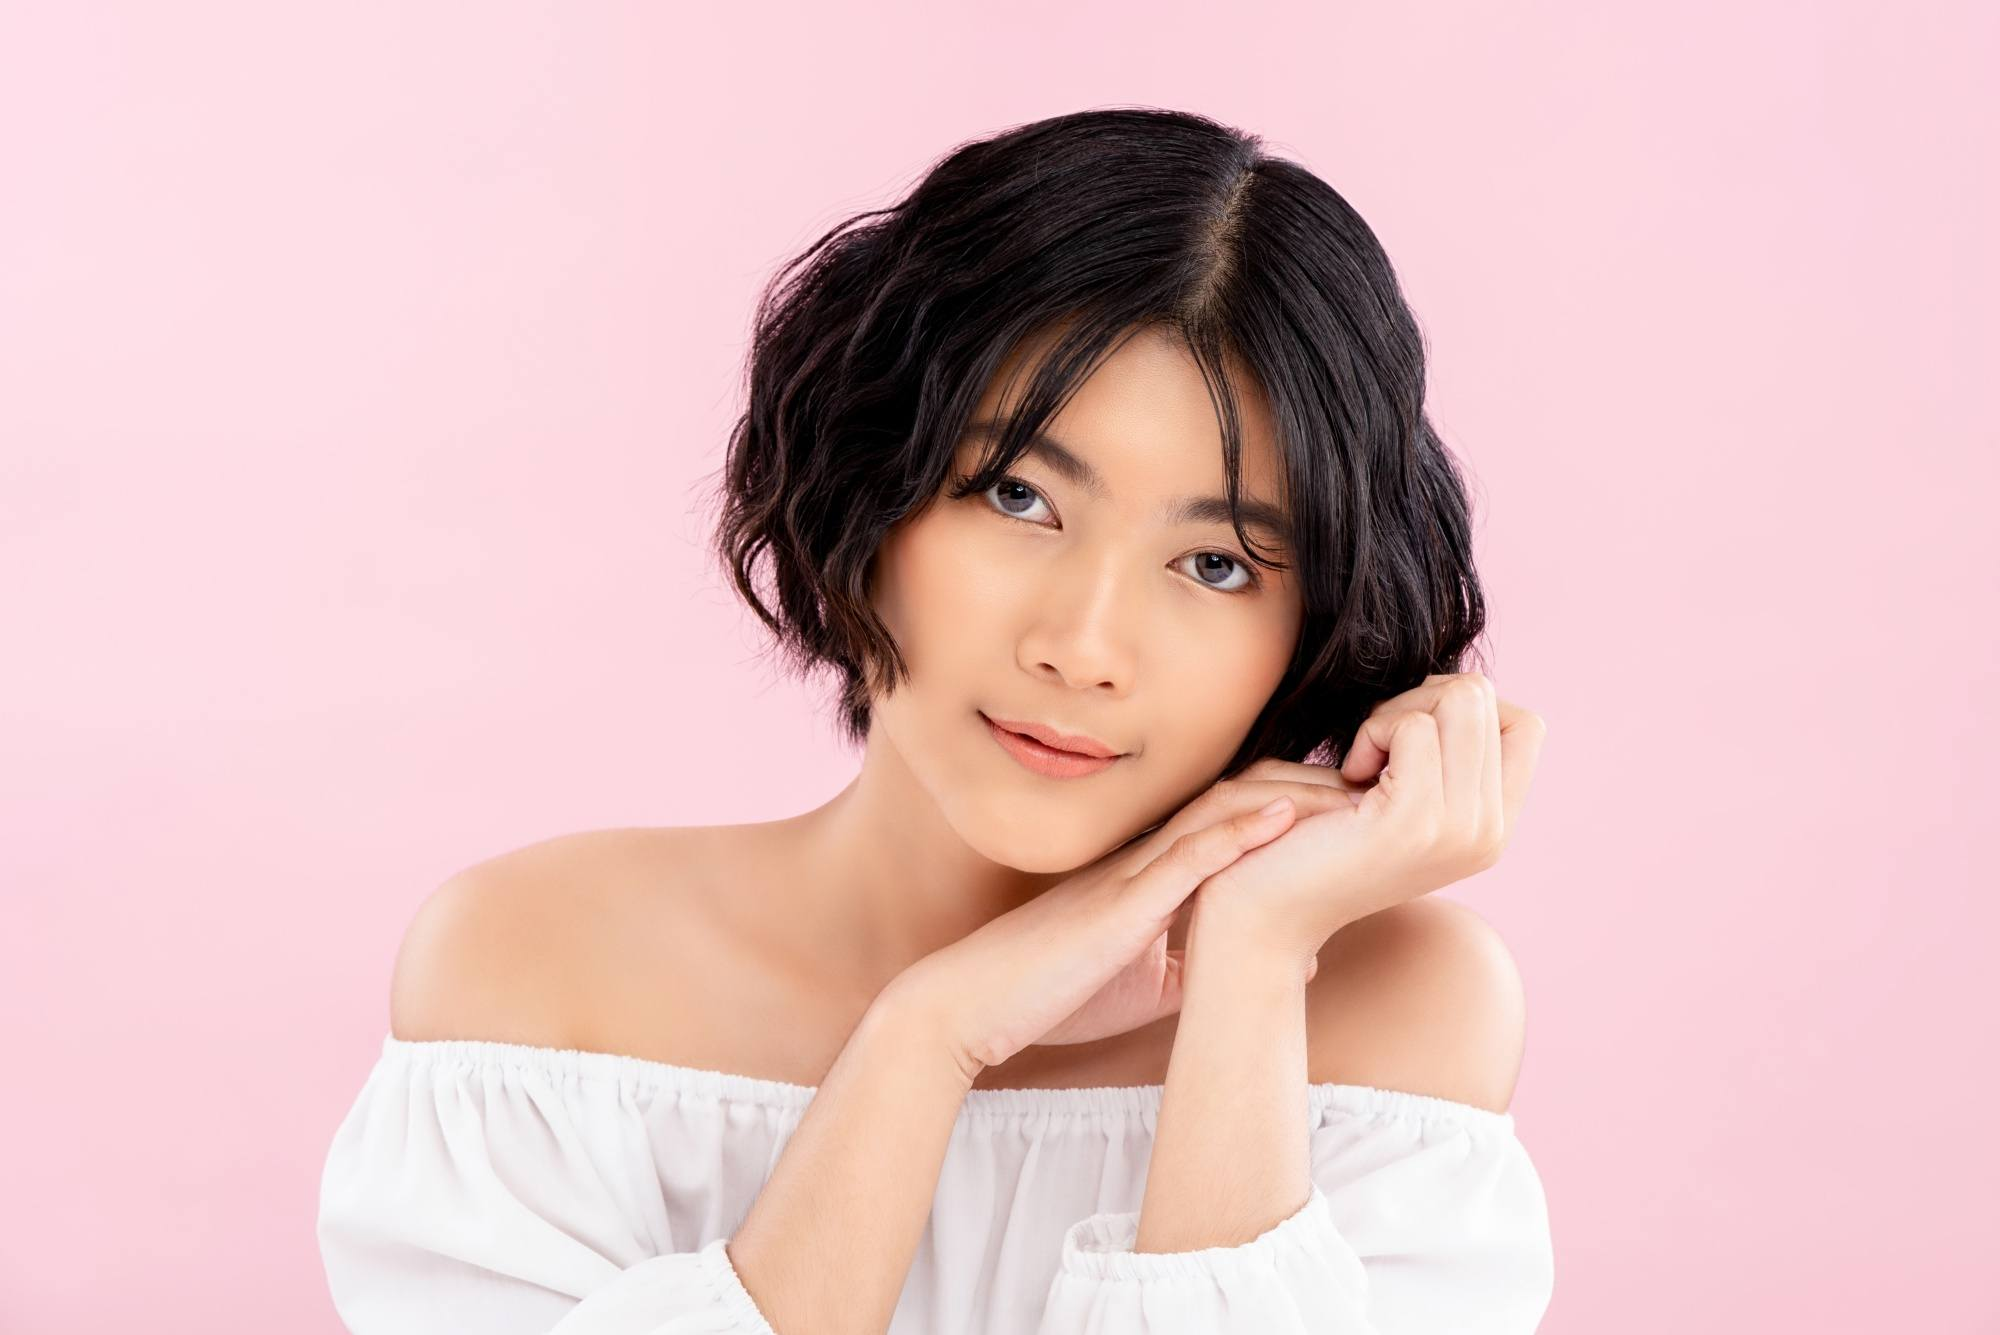 Asian woman with short wavy black hair wearing an off-shoulder white blouse